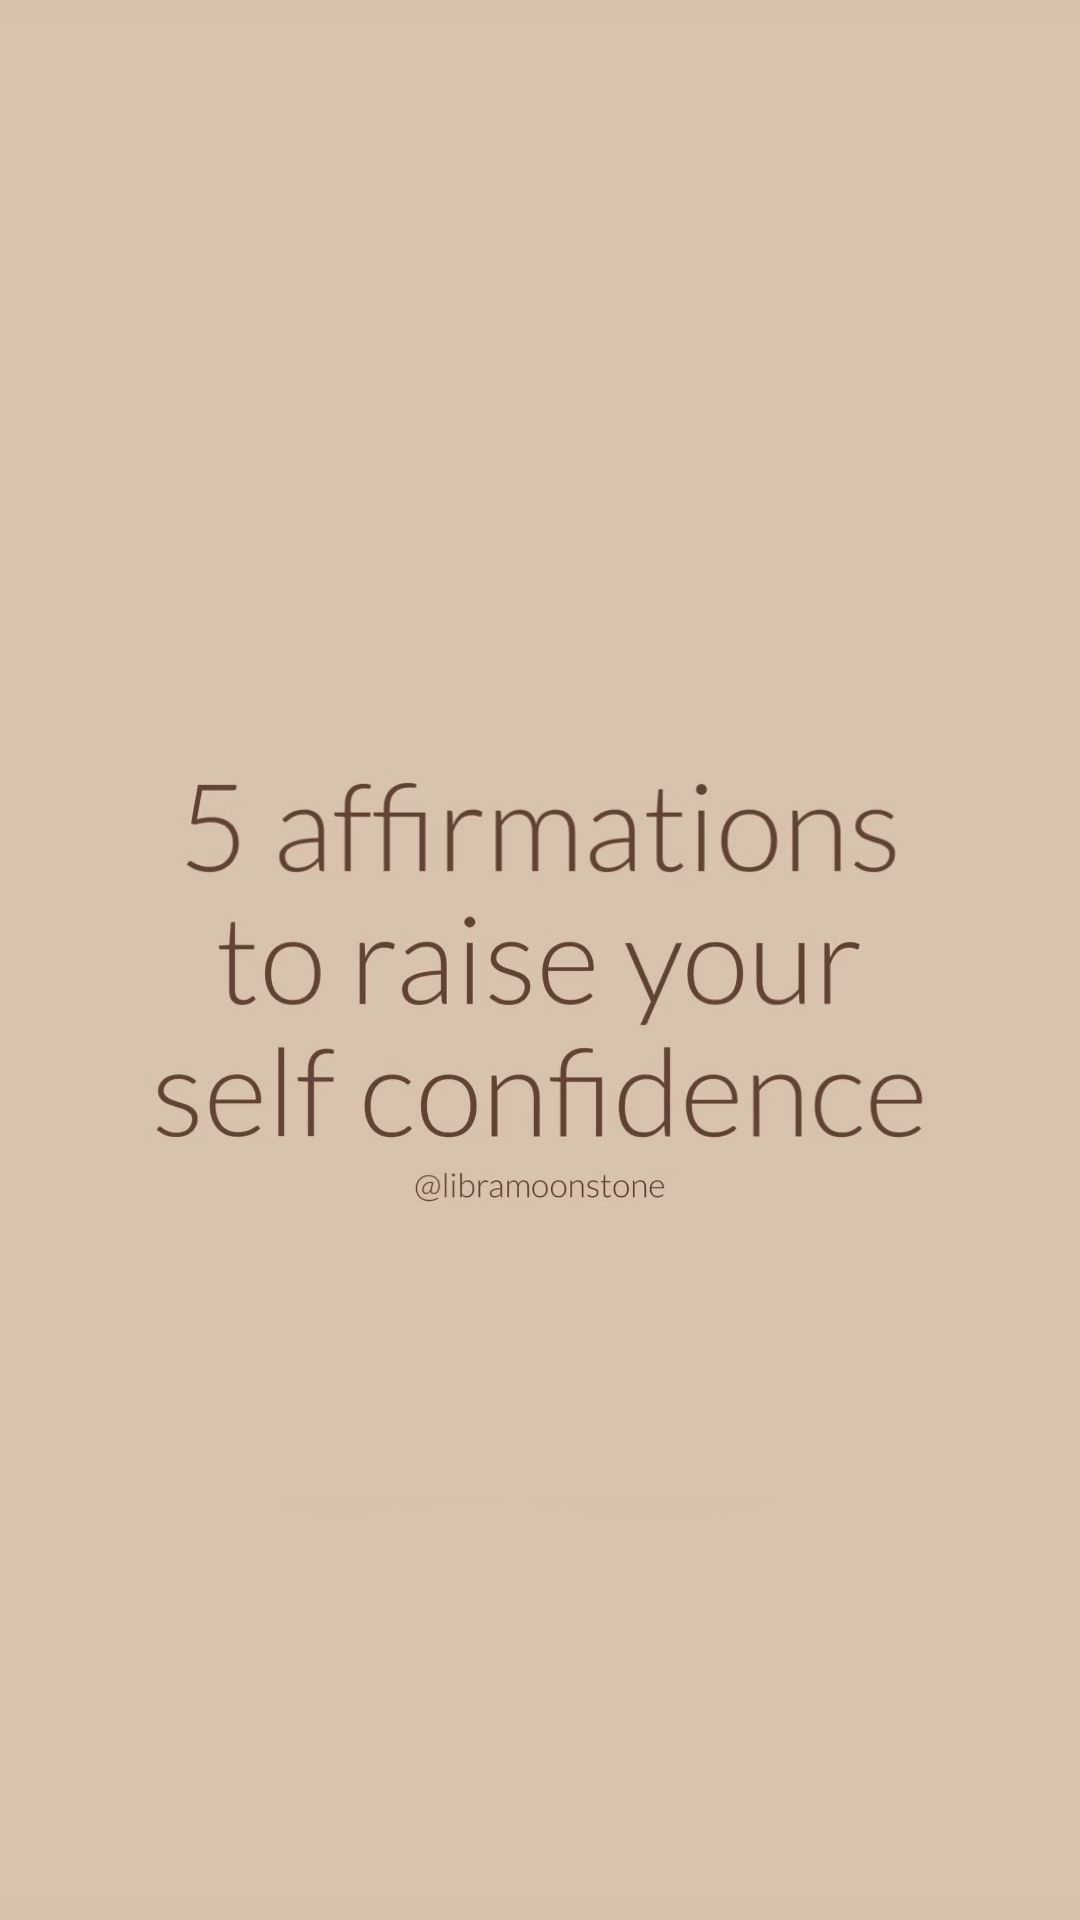 5 Affirmations To Raise Your Self Confidence